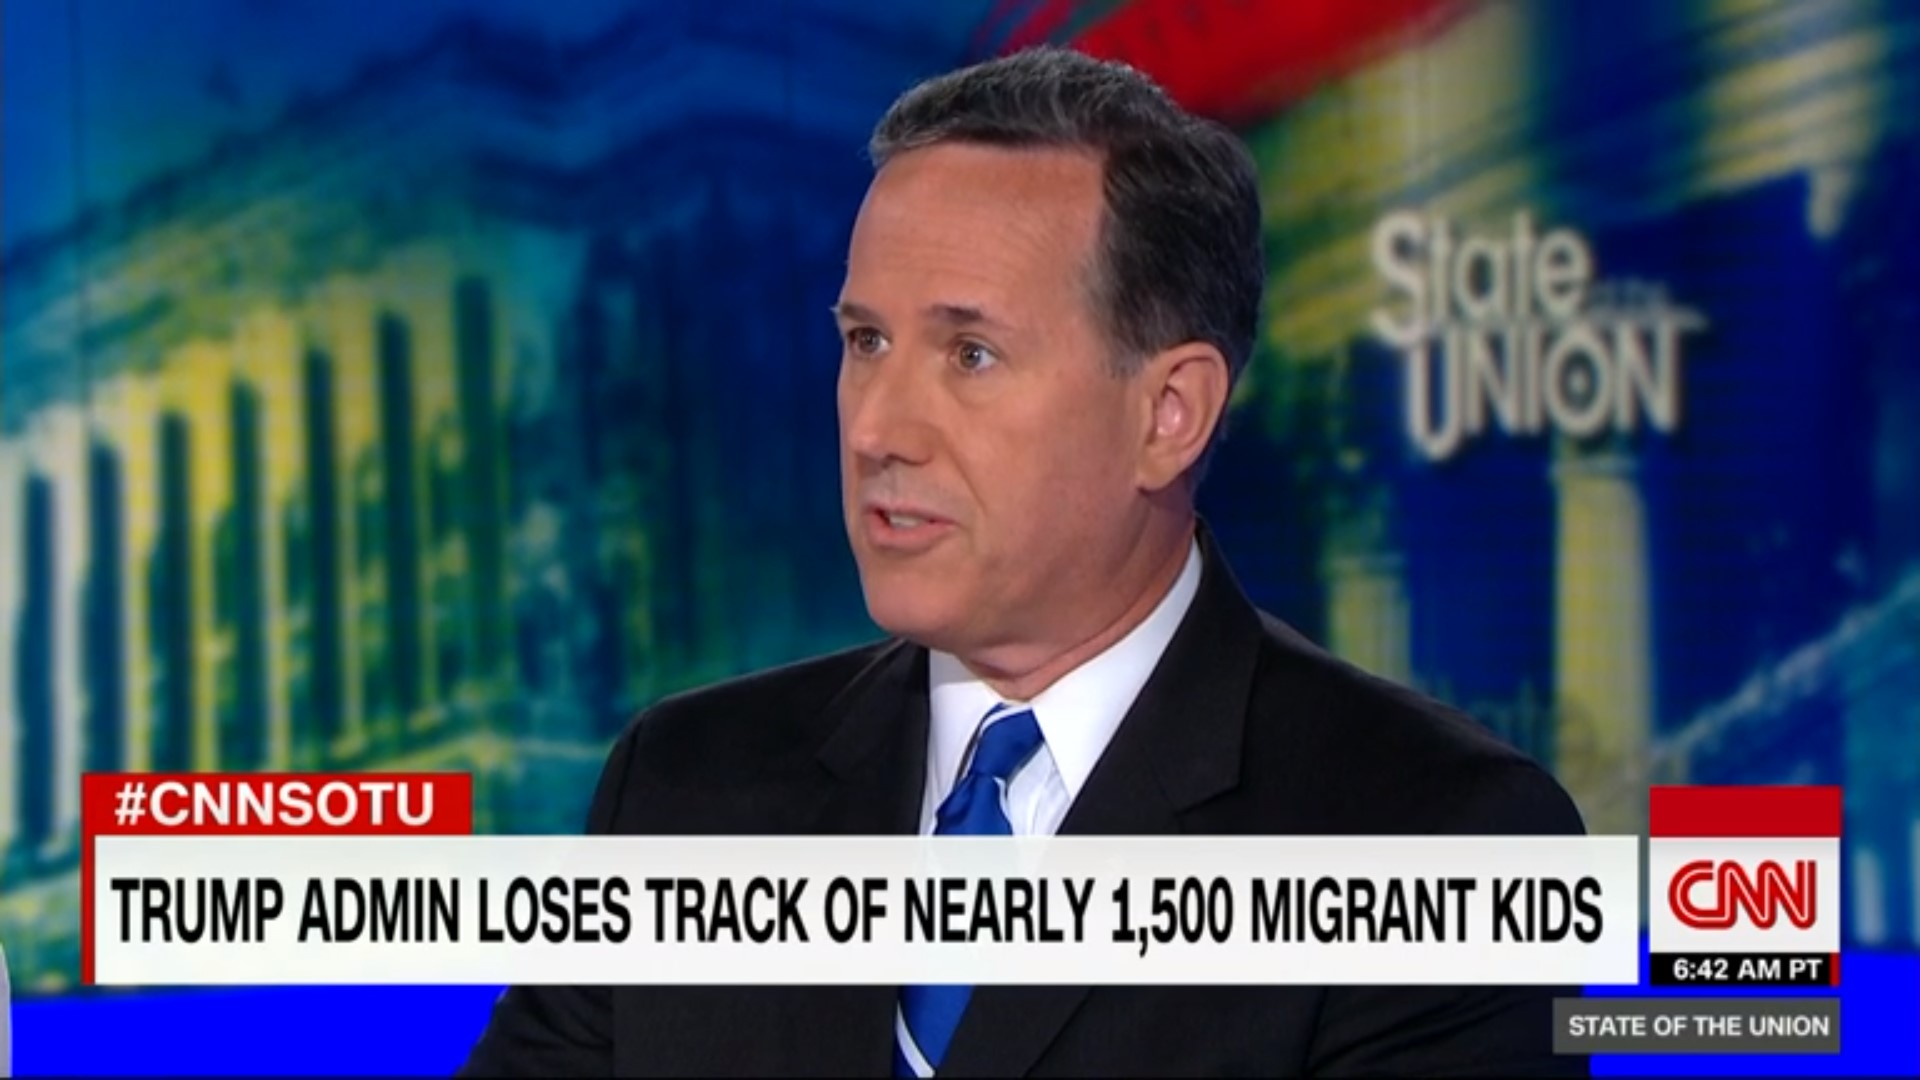 Liberals Tear Into Rick Santorum After He Defends Trump Admin For Losing 1,500 Migrant Children